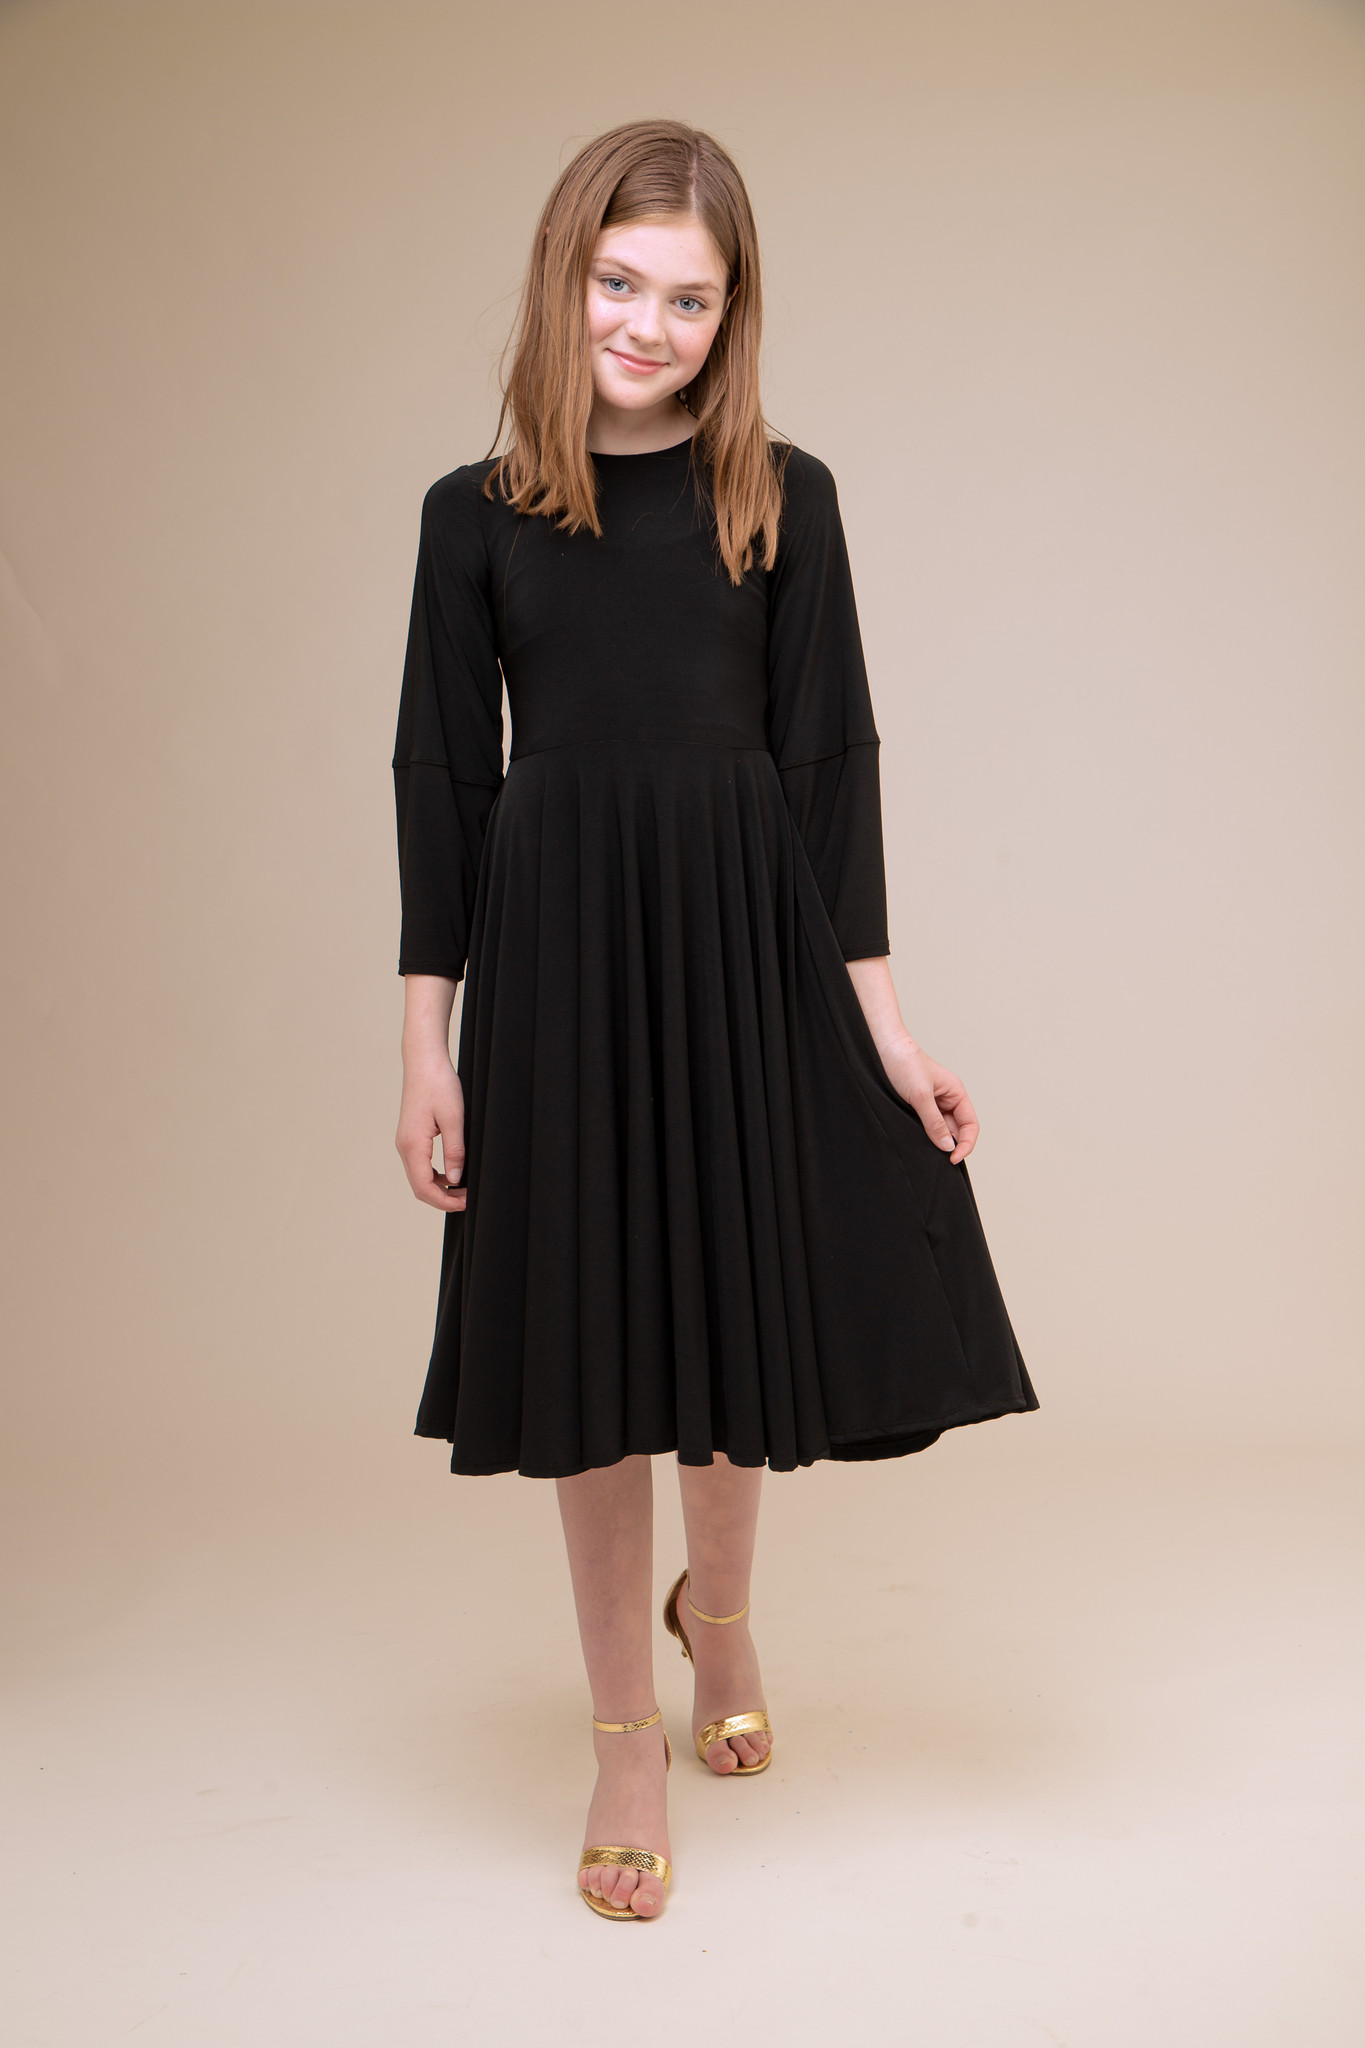 Black Pleated Dress with Detailed Sleeve in Longer Length.